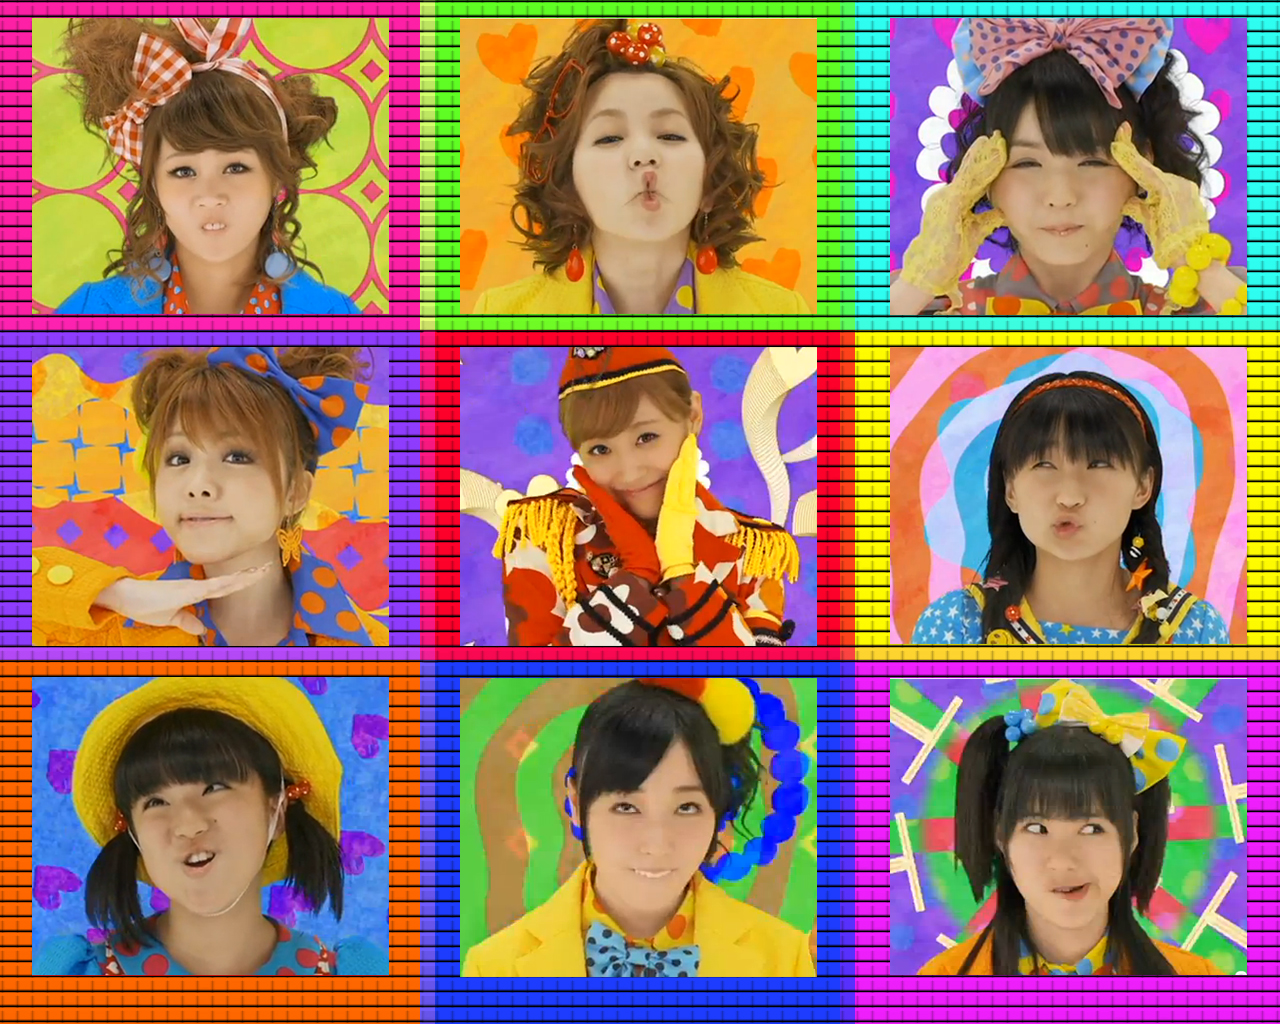 Morning Musume - Kare to Issho by hairsprayfusion